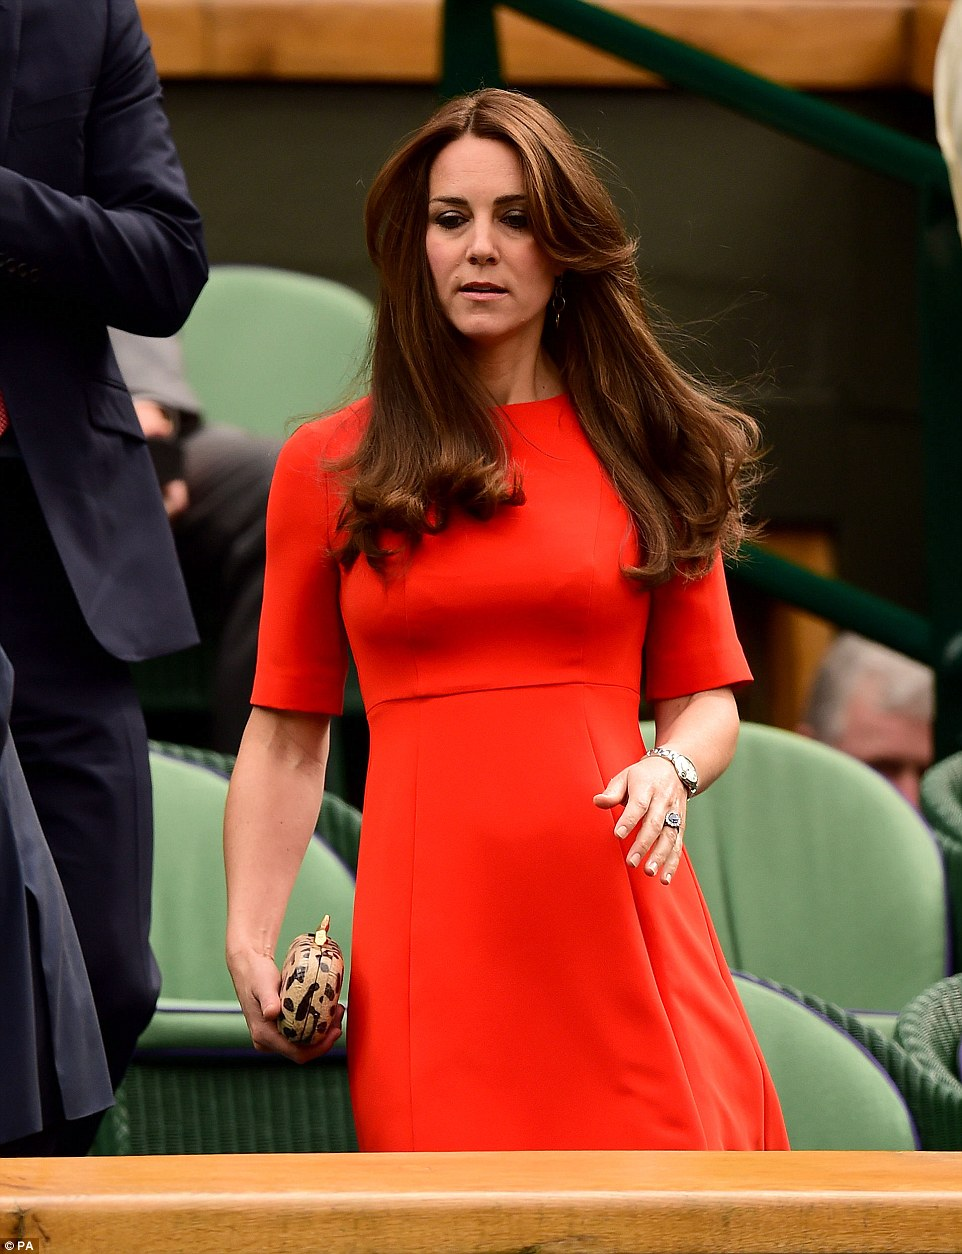 Kate looked resplendent in a bold red L.K.Bennett dress